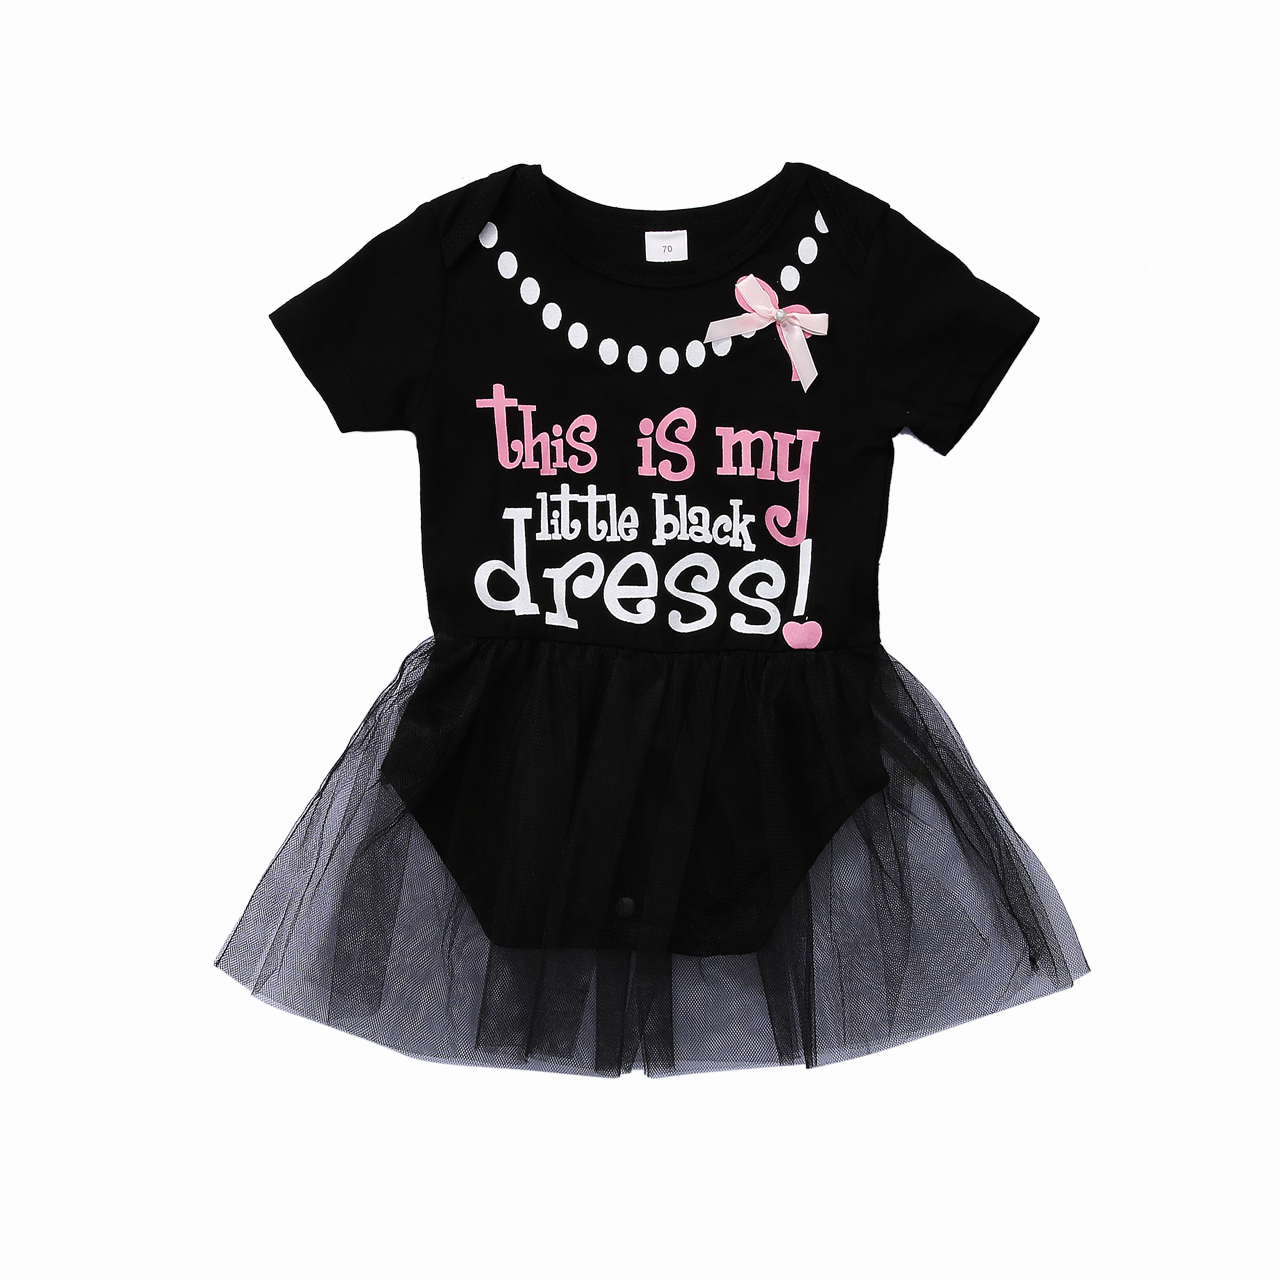 2017 Summer Newborn Baby Girl Clothes My Little Black Dress Letter Printed Tutu Skirted Romper Outfits Sunsuit 0-24M 2017 sequins mermaid newborn baby girl summer tutu skirted romper bodysuit jumpsuit headband 2pcs outfits kids clothing set